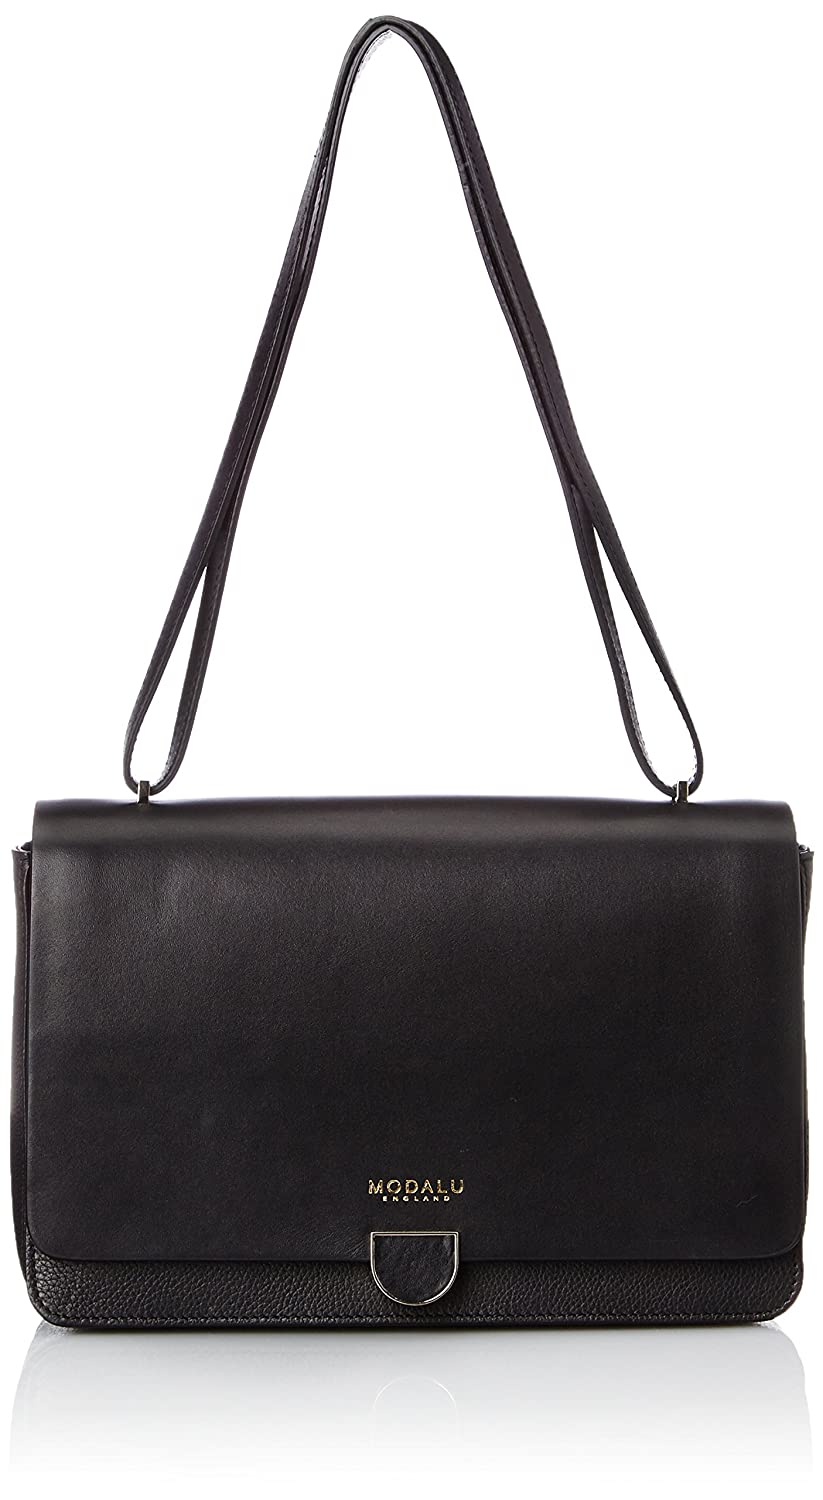 Amazon.co.jp: [モダル] MODALU MARLBOROUGH SHOULDER MH5033 BLACK (ブラック): シューズ&バッグ:通販